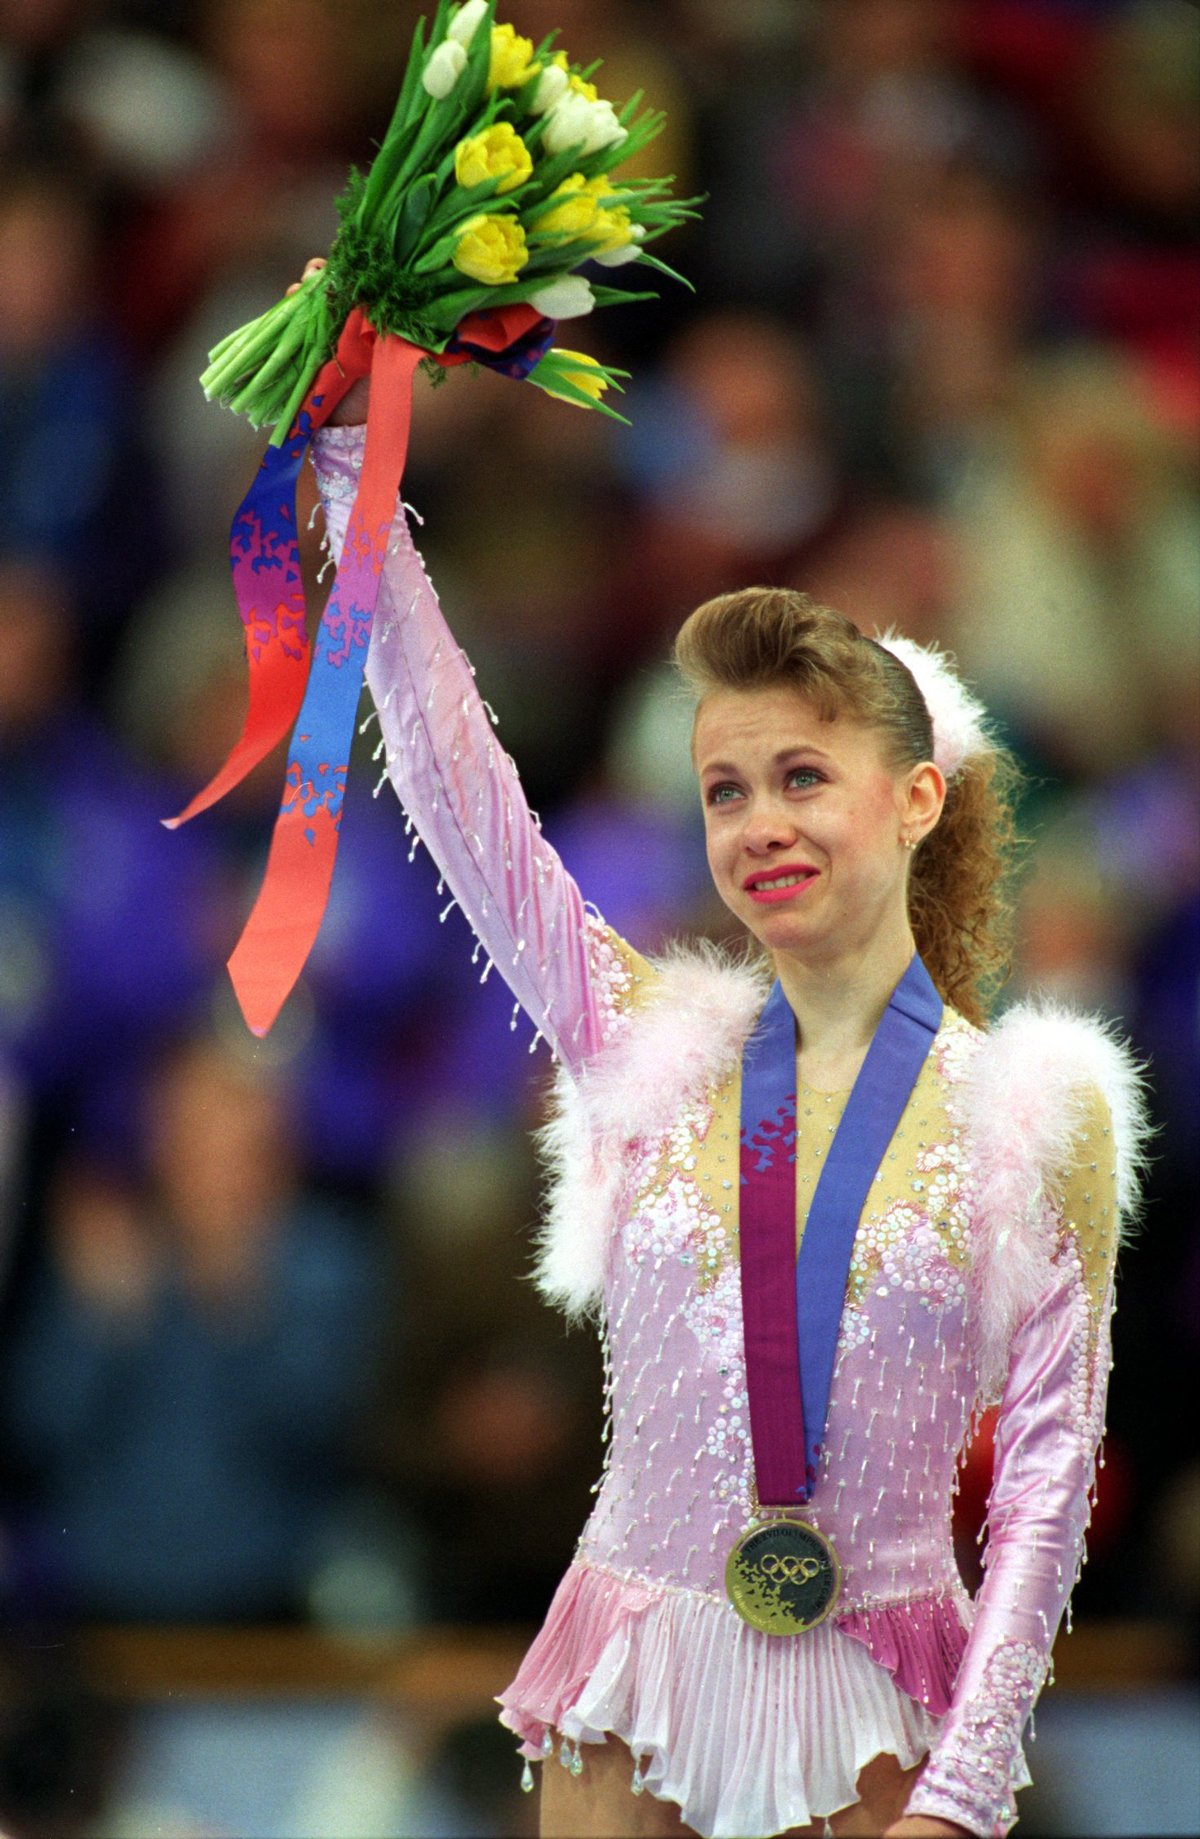 then-in-1994-oksana-baiul-won-the-gold-medal-for-ukraine-despite-an-injury-sustained-by-colliding-with-another-skater-in-practice[1].jpg